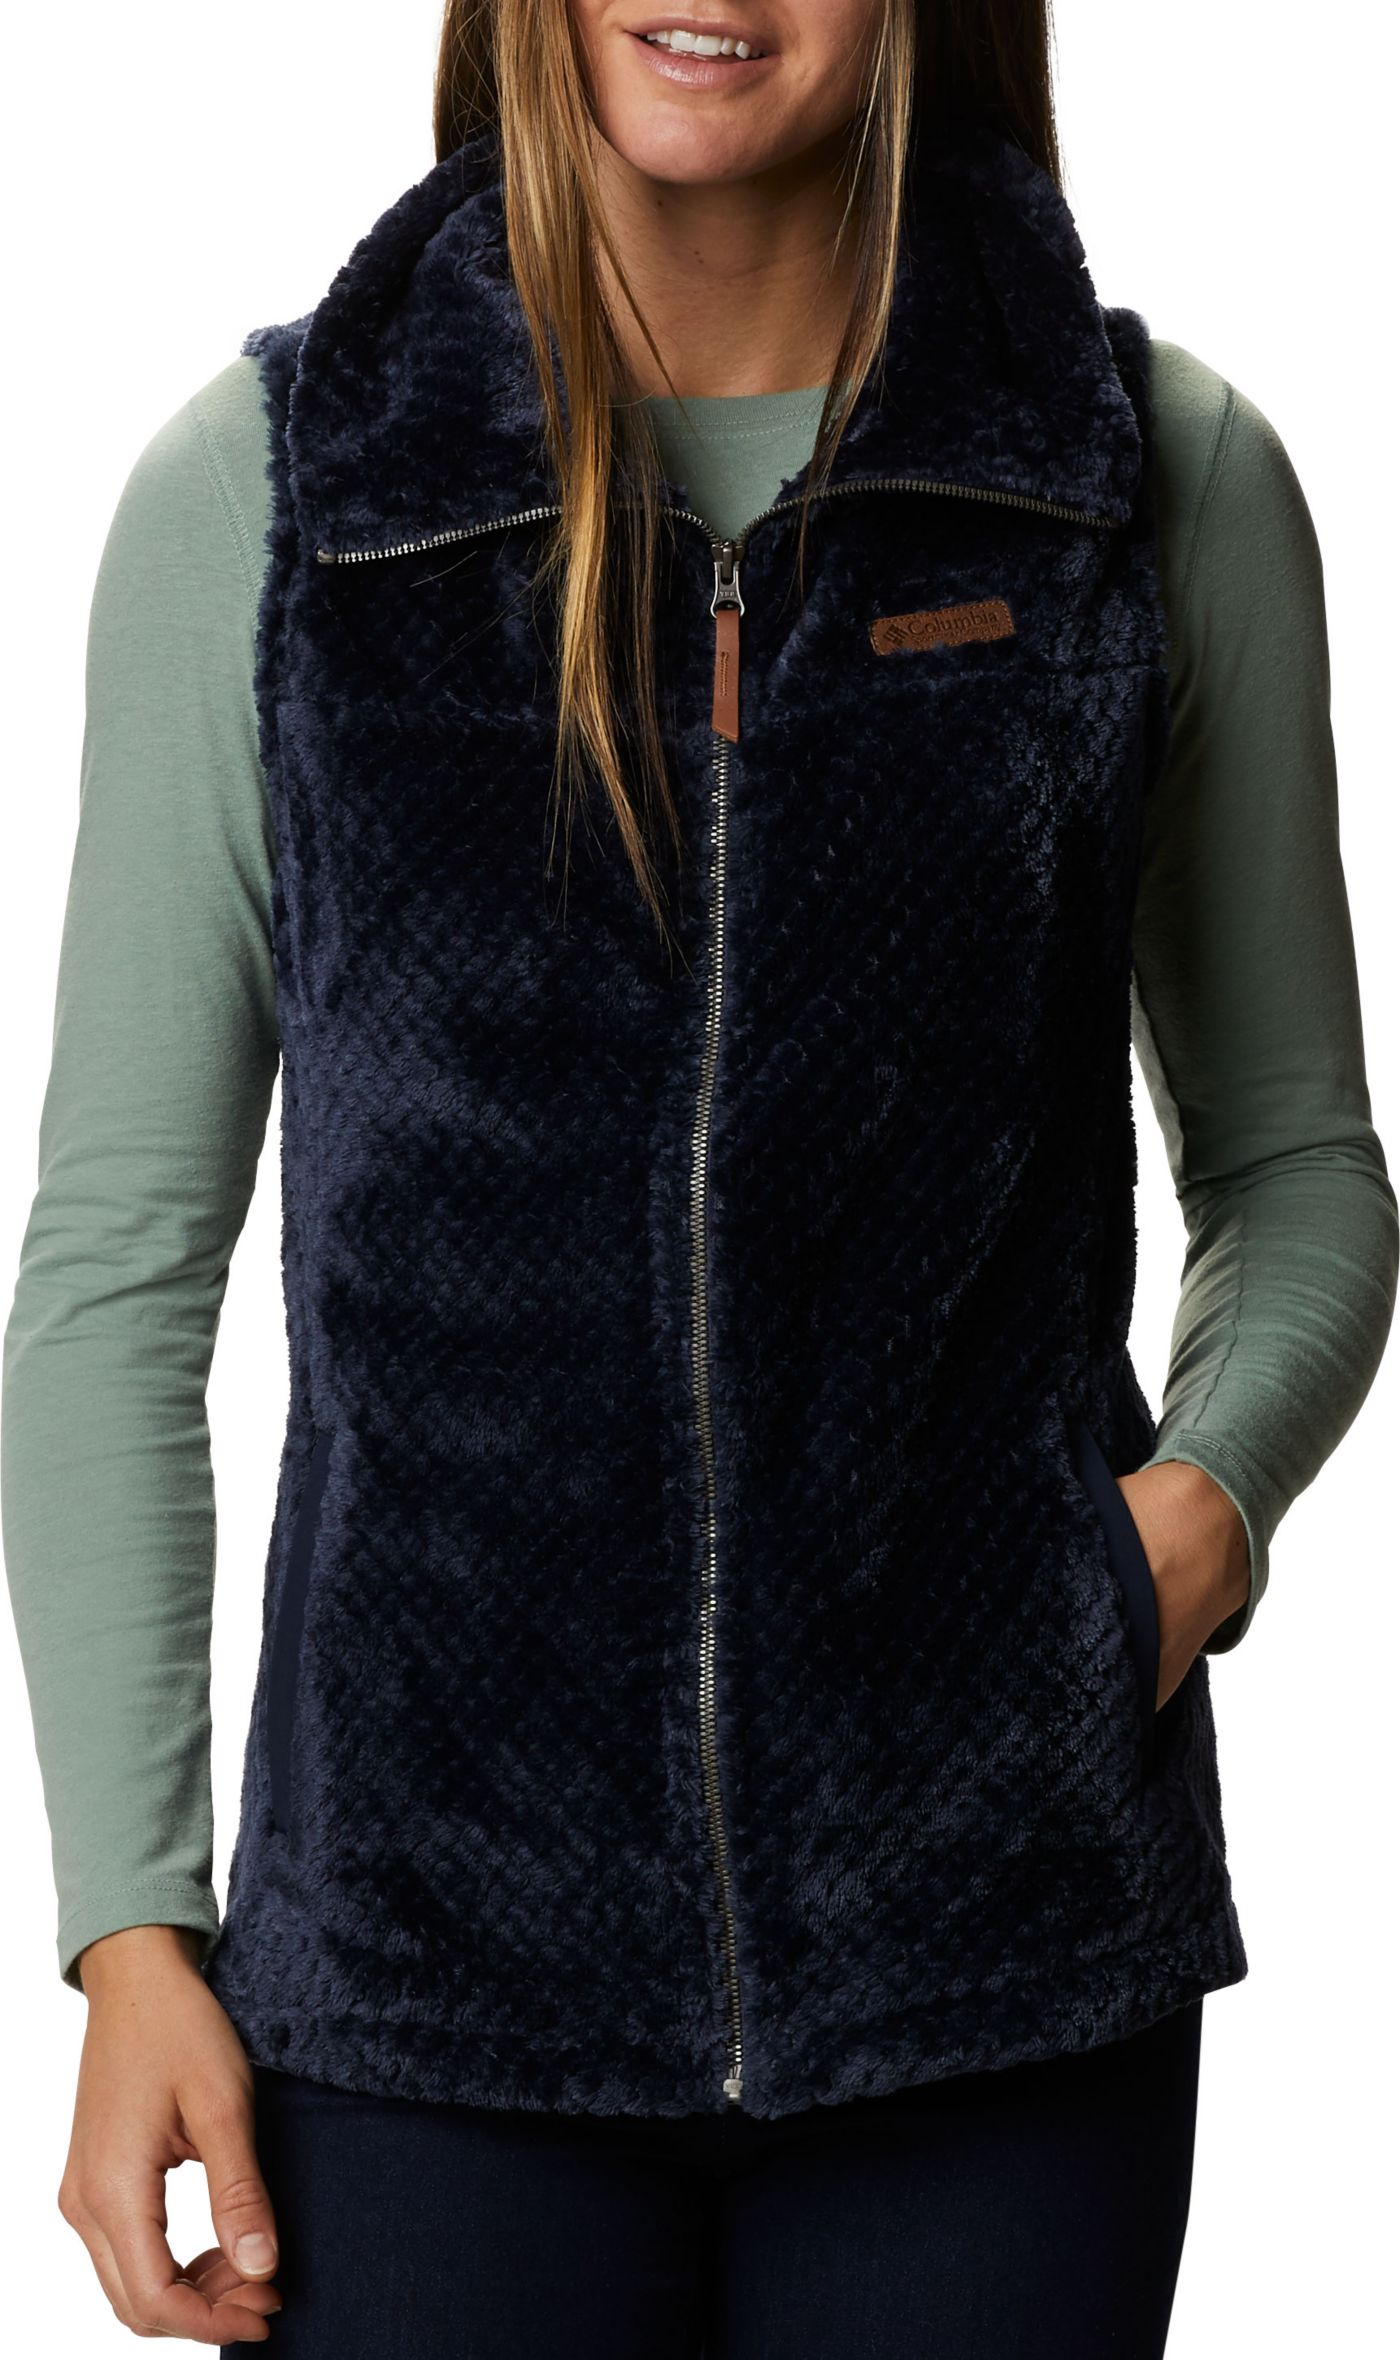 Columbia Women's Fire Side Sherpa Vest Jacket